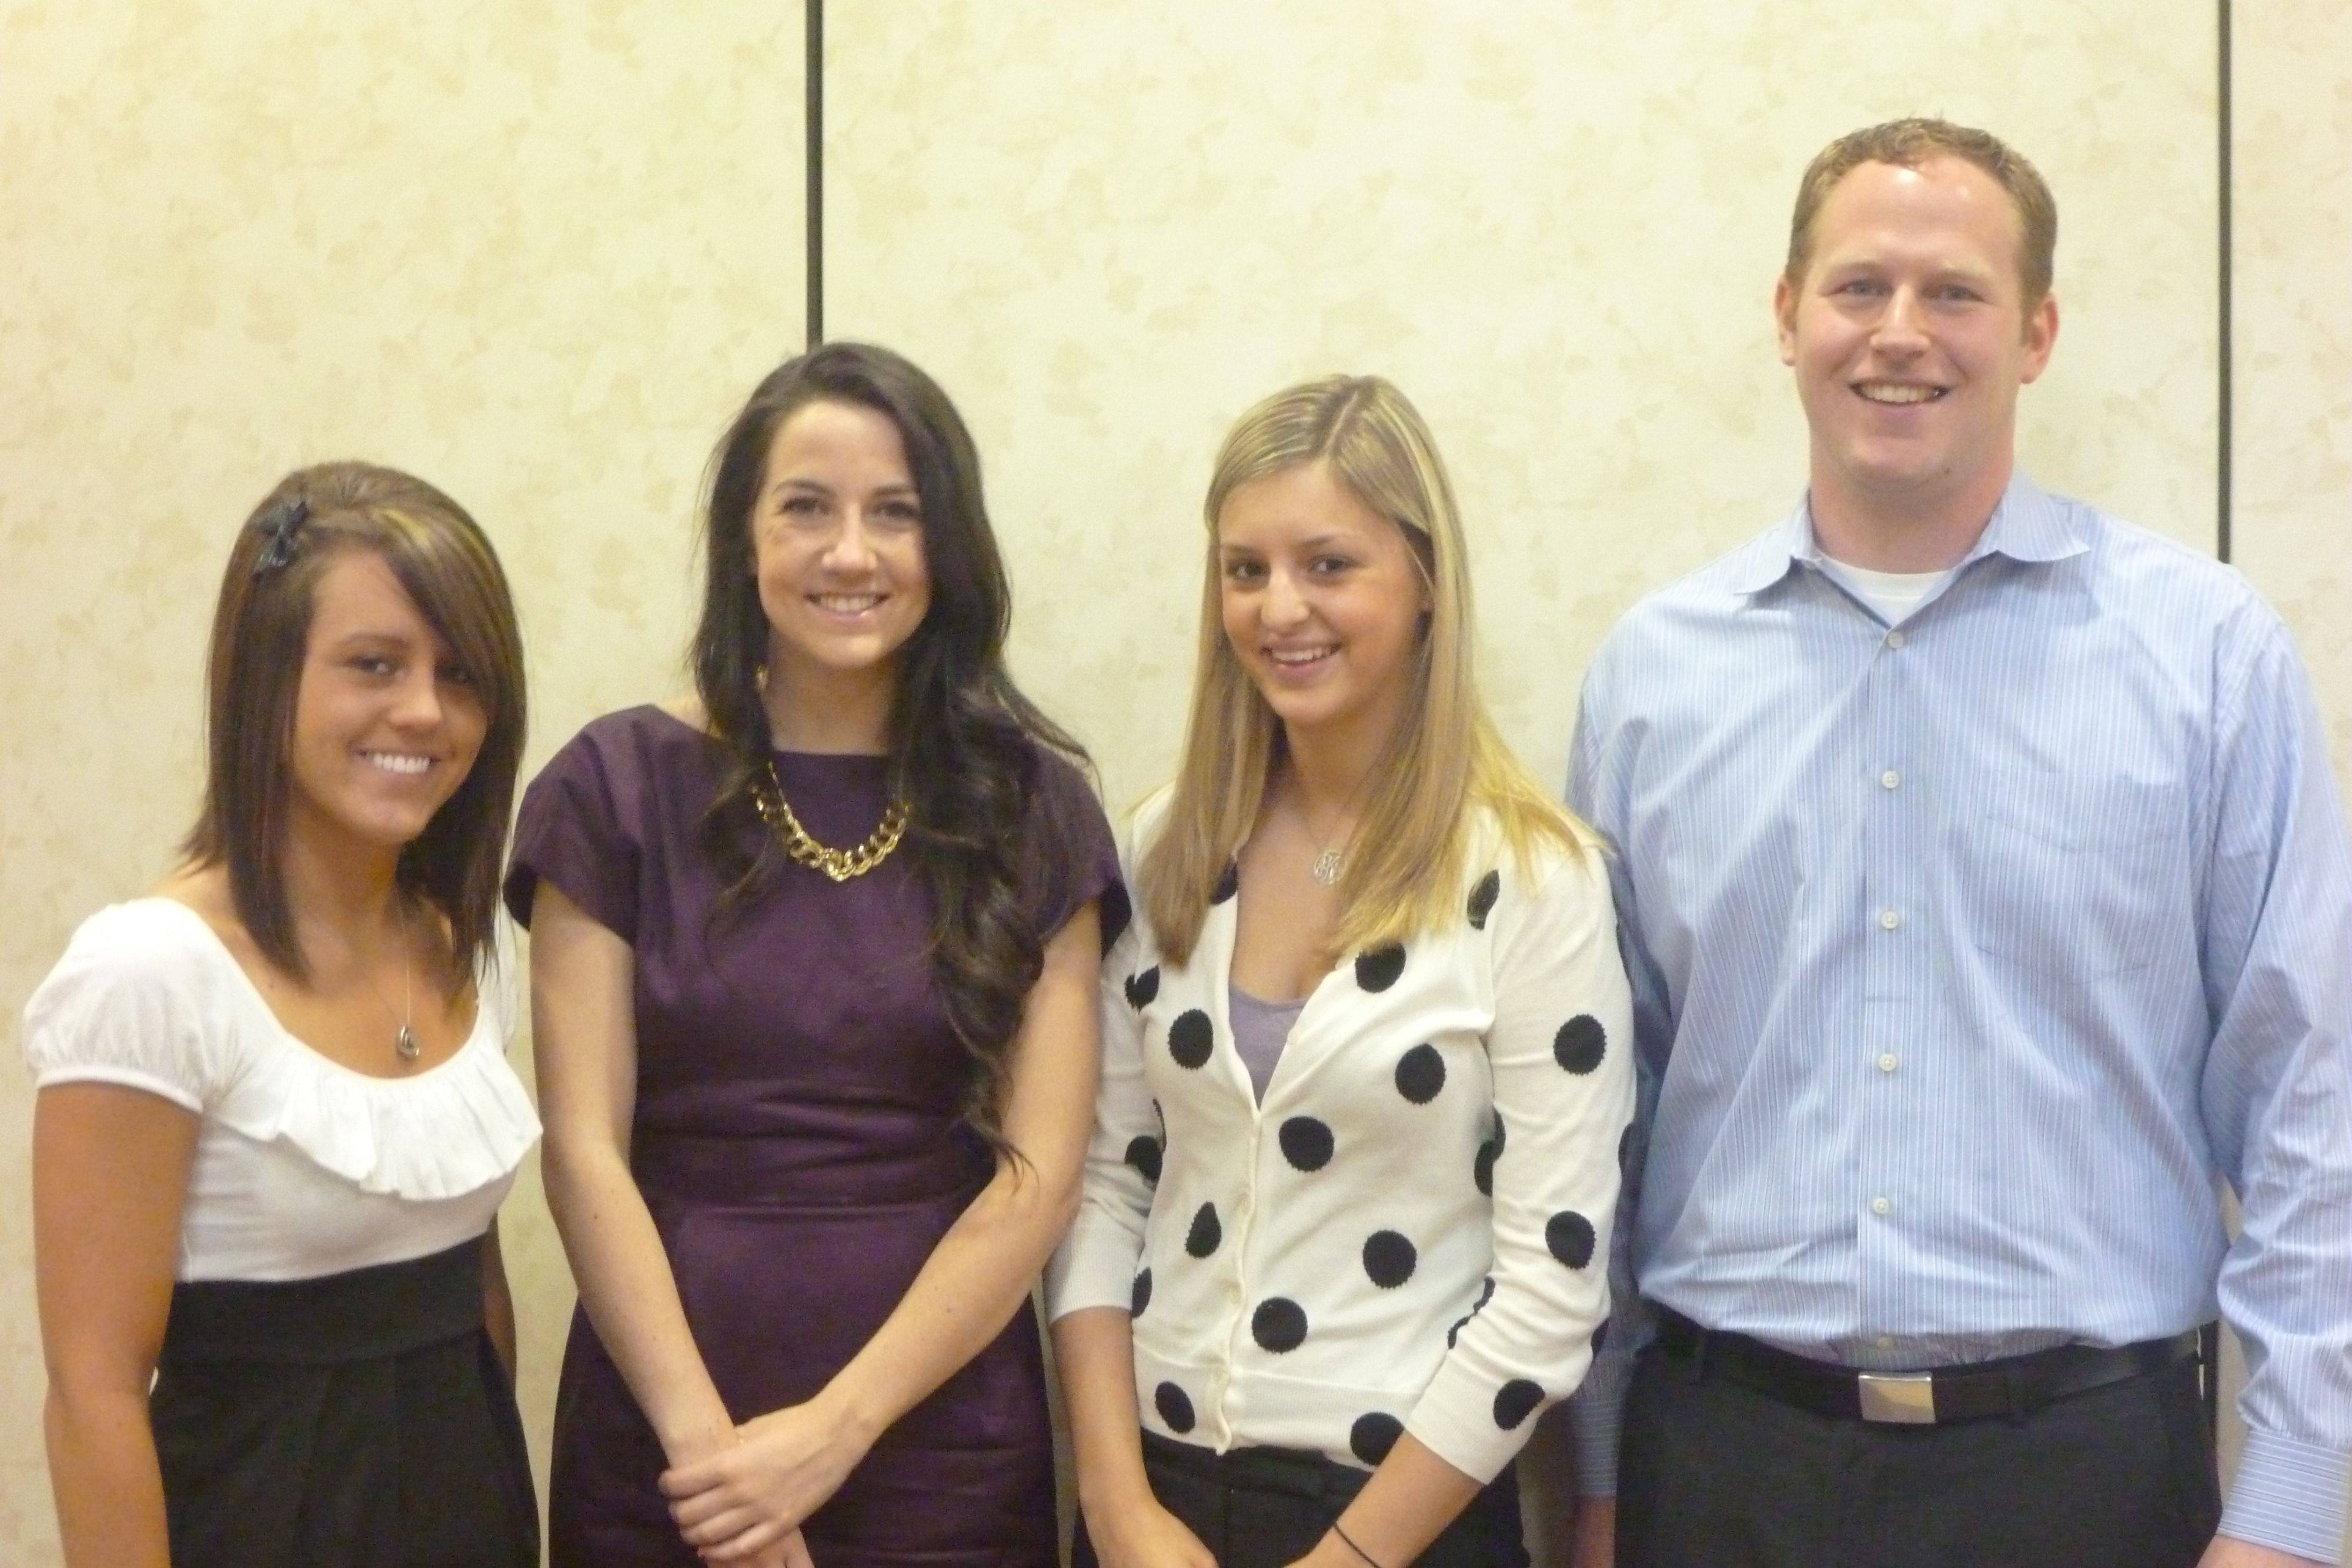 Arlington Heights Nurses Club scholarship recipients, from left, are: Kimberly Nylec, Mary Katherine Trunk, Jaclyn Kanners and Tim Kuypers.